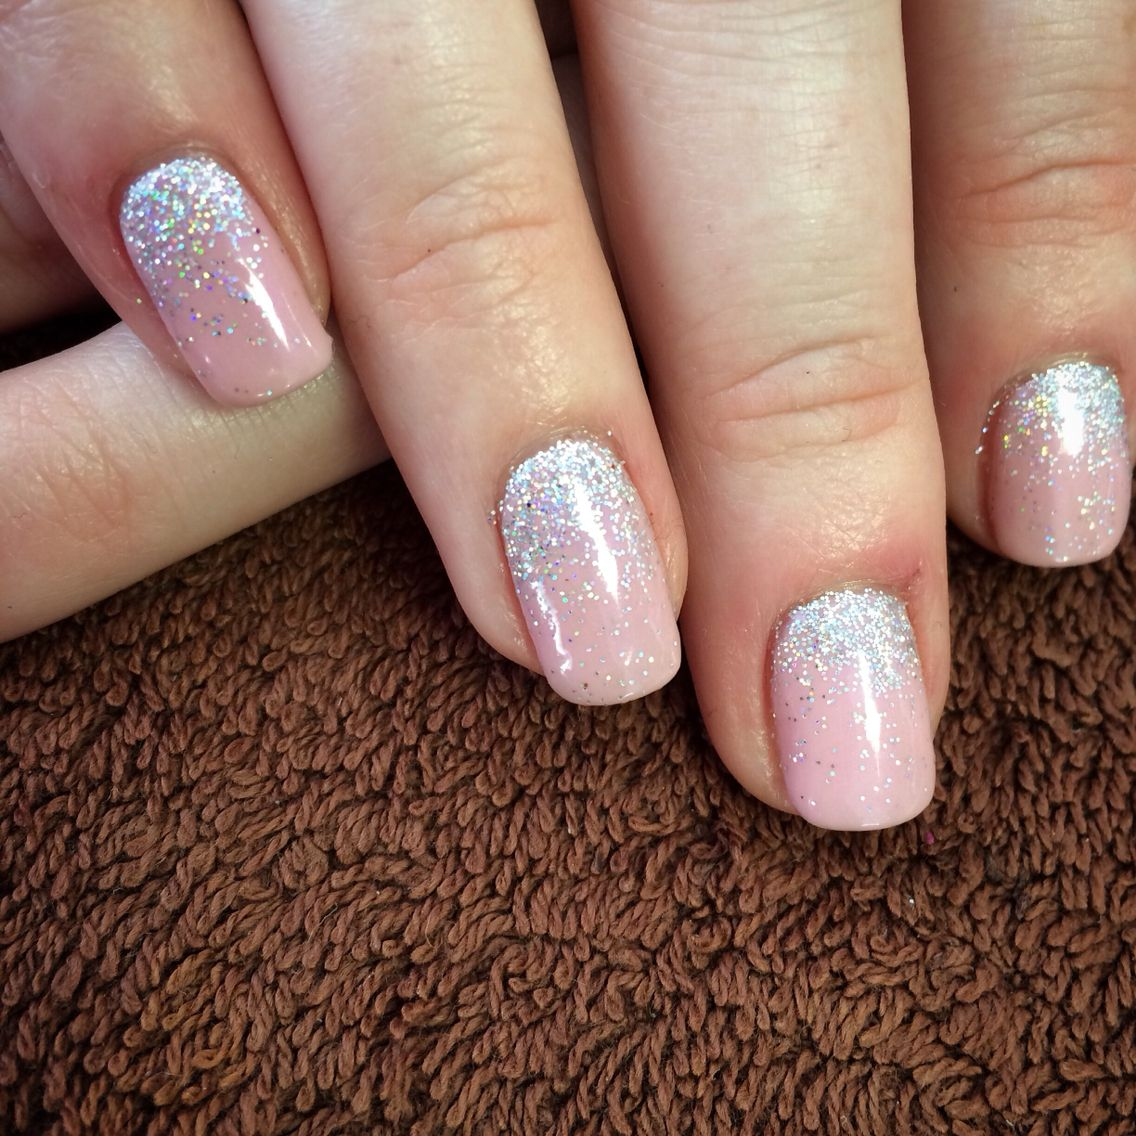 Tried Out Our Newest Colour Blush Teddy Shellac With Silver Faded Holographic Glitter In Love Blush Nails Silver Glitter Nails Pink Wedding Nails